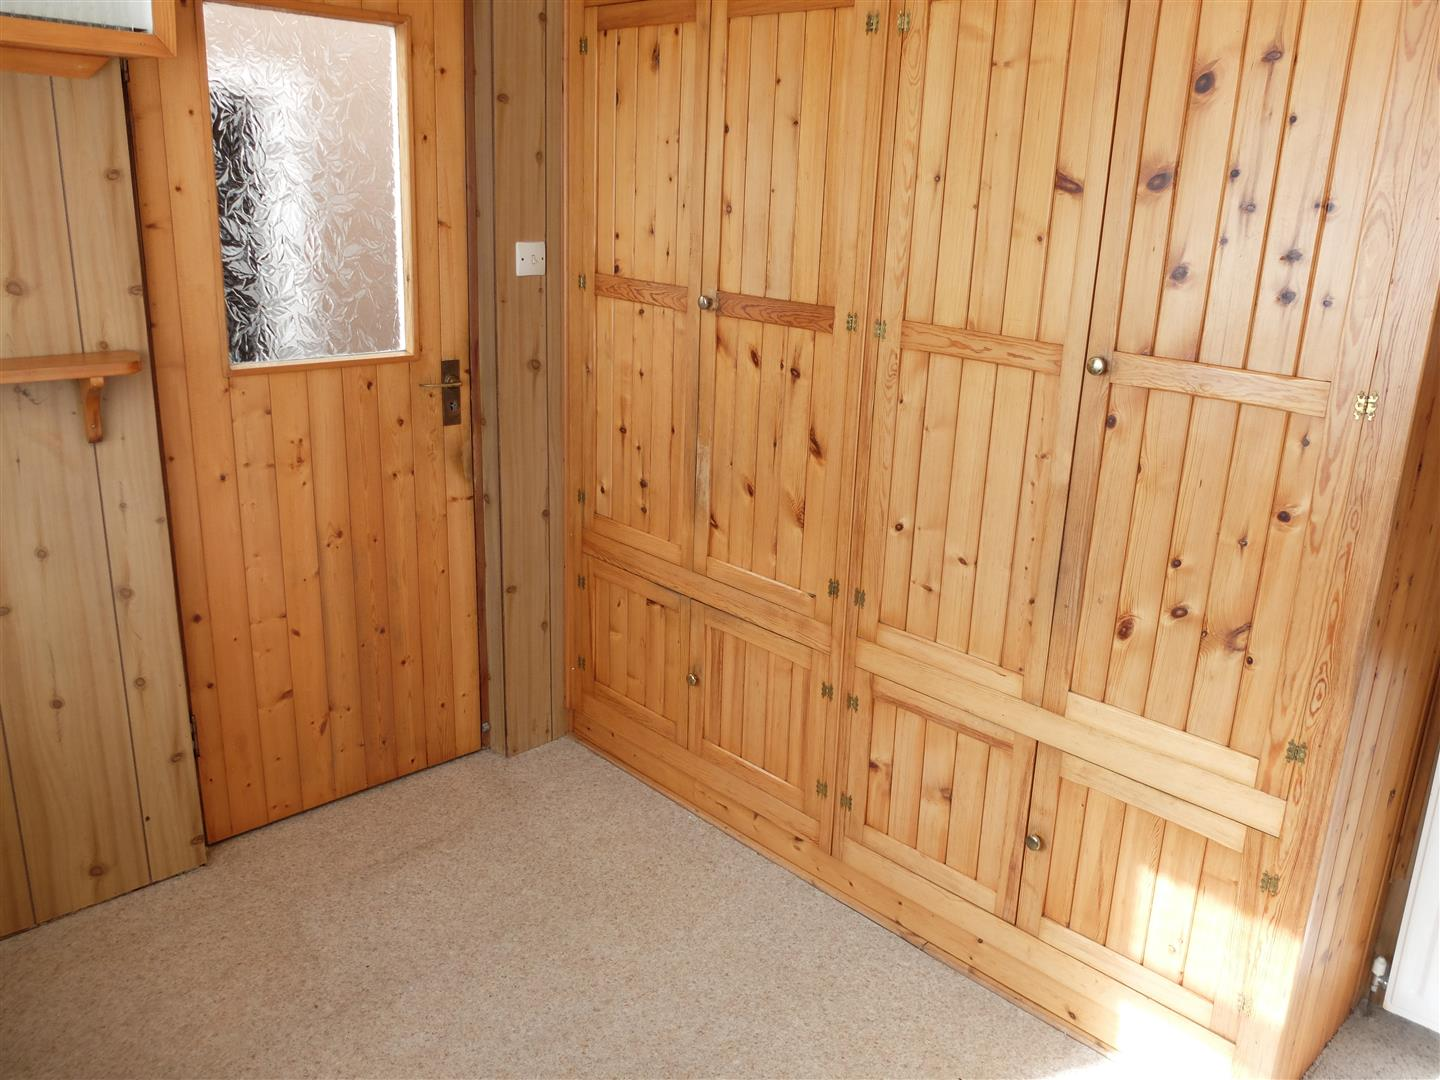 2 Farbrow Road Carlisle 2 Bedrooms Bungalow - Semi Detached On Sale